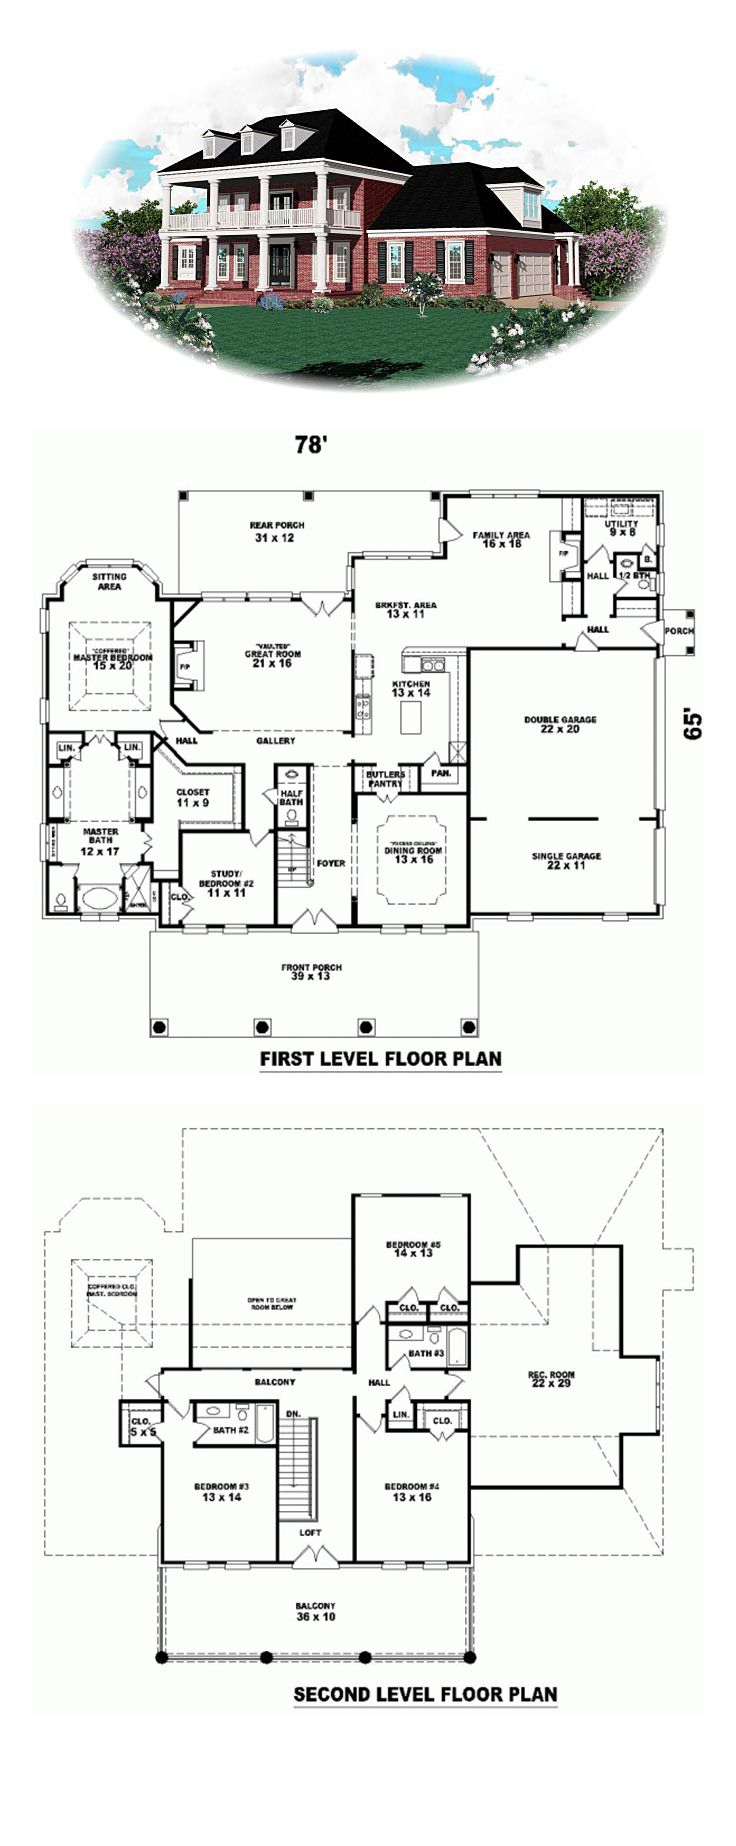 Plantation House Plan 47157 | 4347 sq. ft., 3 bedrooms, 3 full bathrooms and 2 half baths. #plantationhome